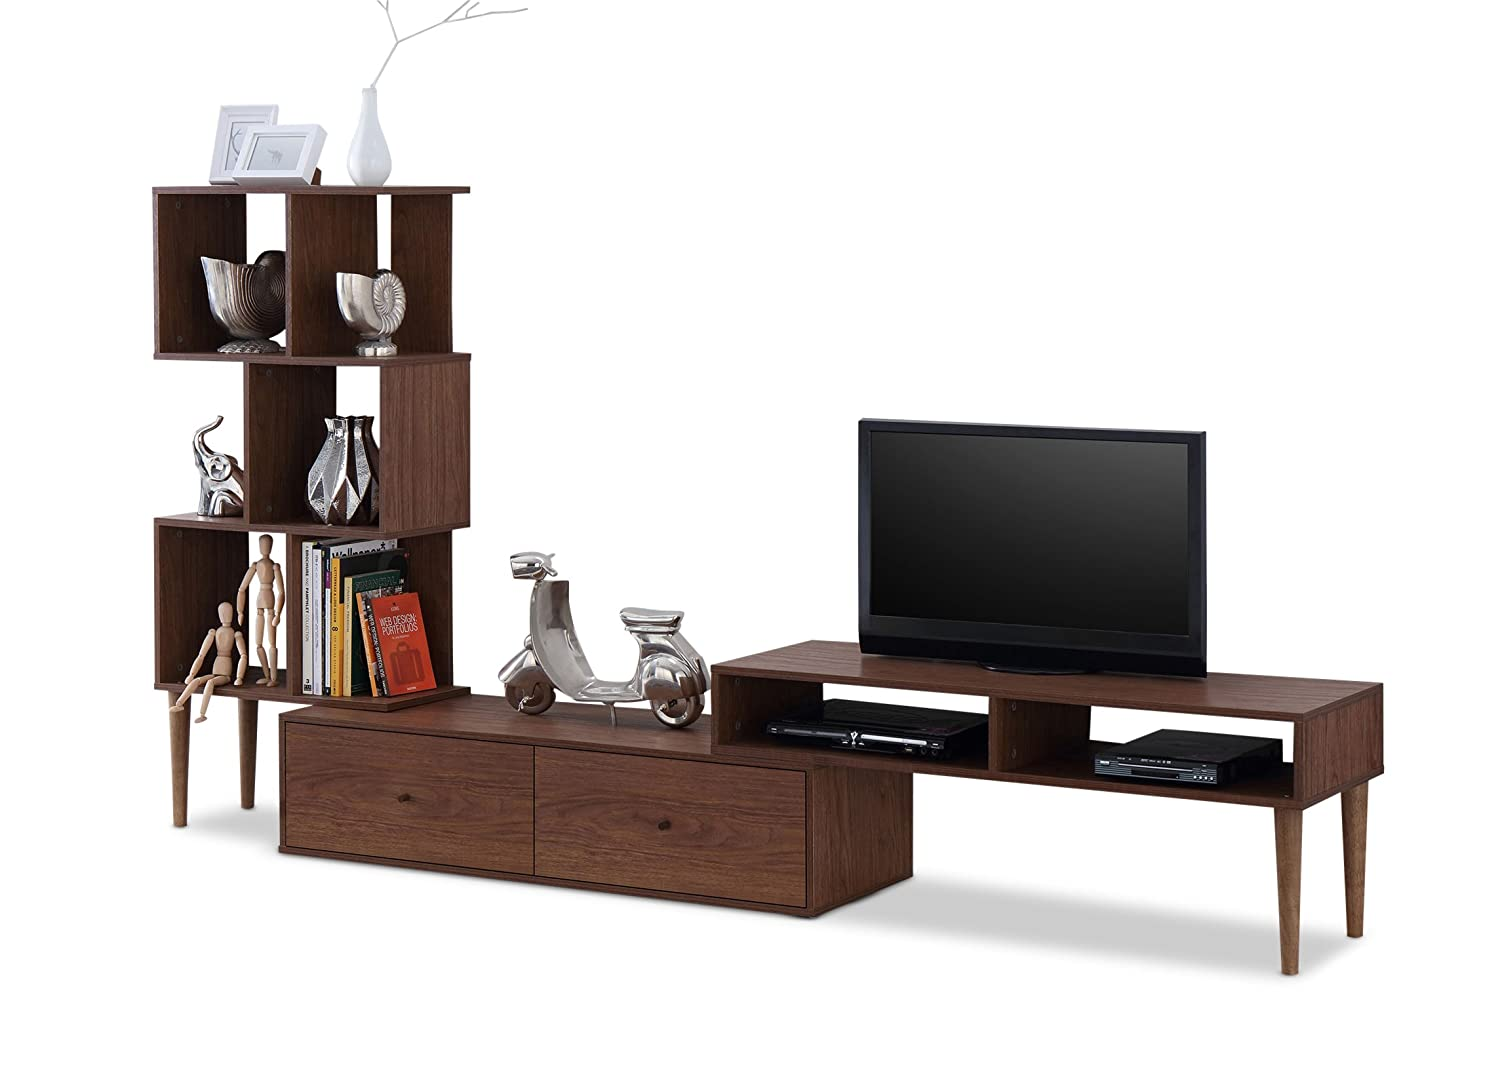 Retro modern furniture Wood Amazoncom Baxton Furniture Studios Haversham Midcentury Retro Modern Tv Stand Entertainment Center And Display Unit Kitchen Dining Thejobheadquarters Amazoncom Baxton Furniture Studios Haversham Midcentury Retro